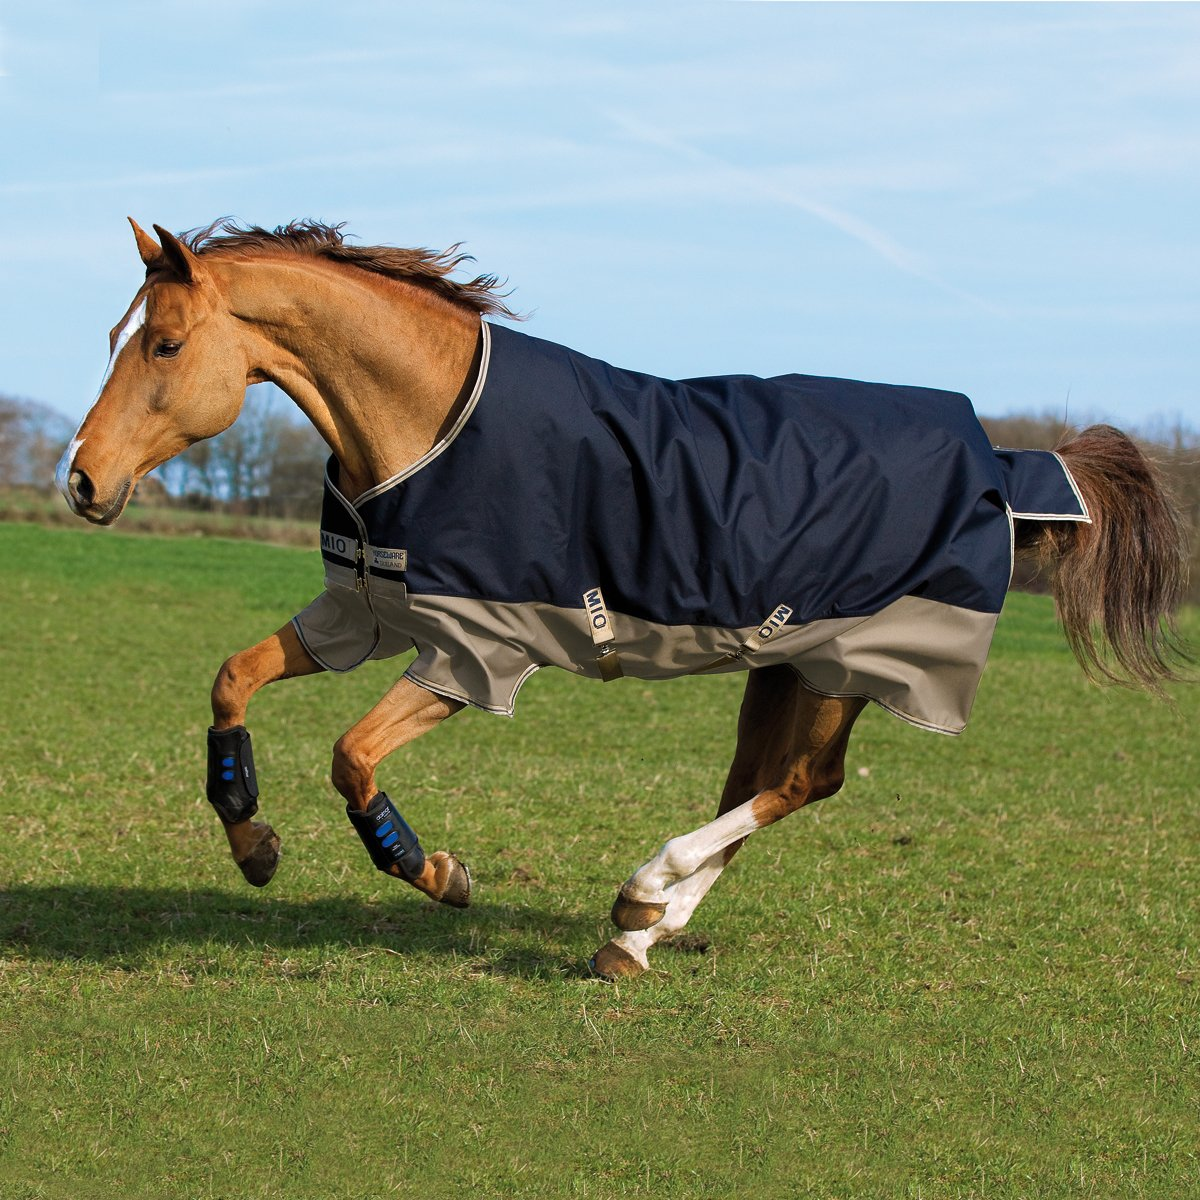 Horseware Mio Turnout medium 200g -Navy & Tan with Navy Groesse:155